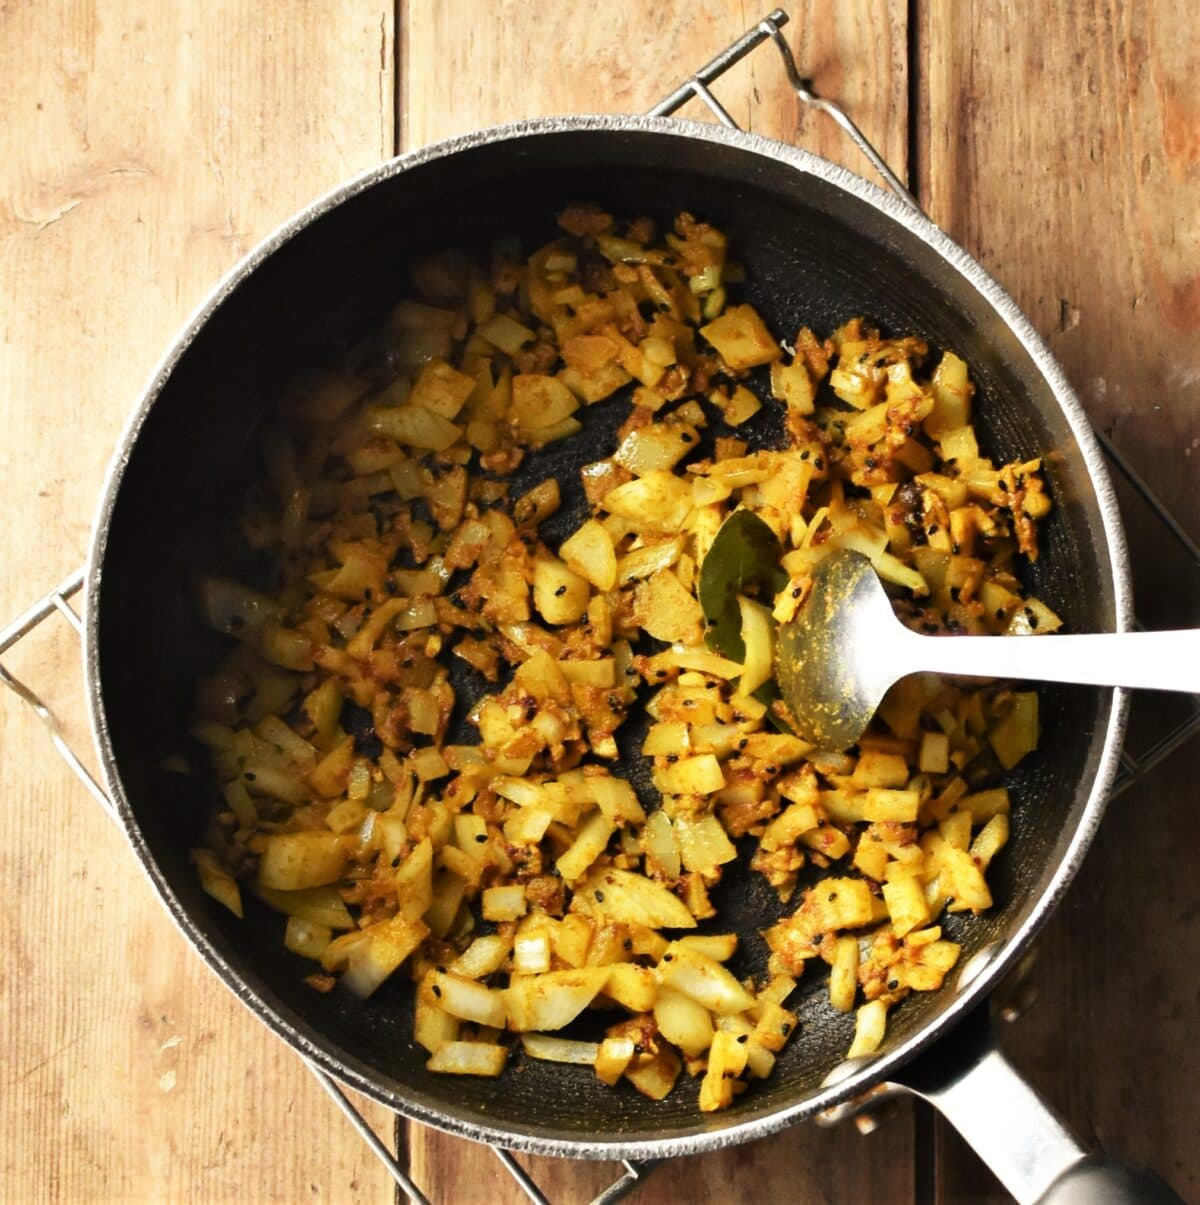 Chopped onions and spices in large pot with spoon.